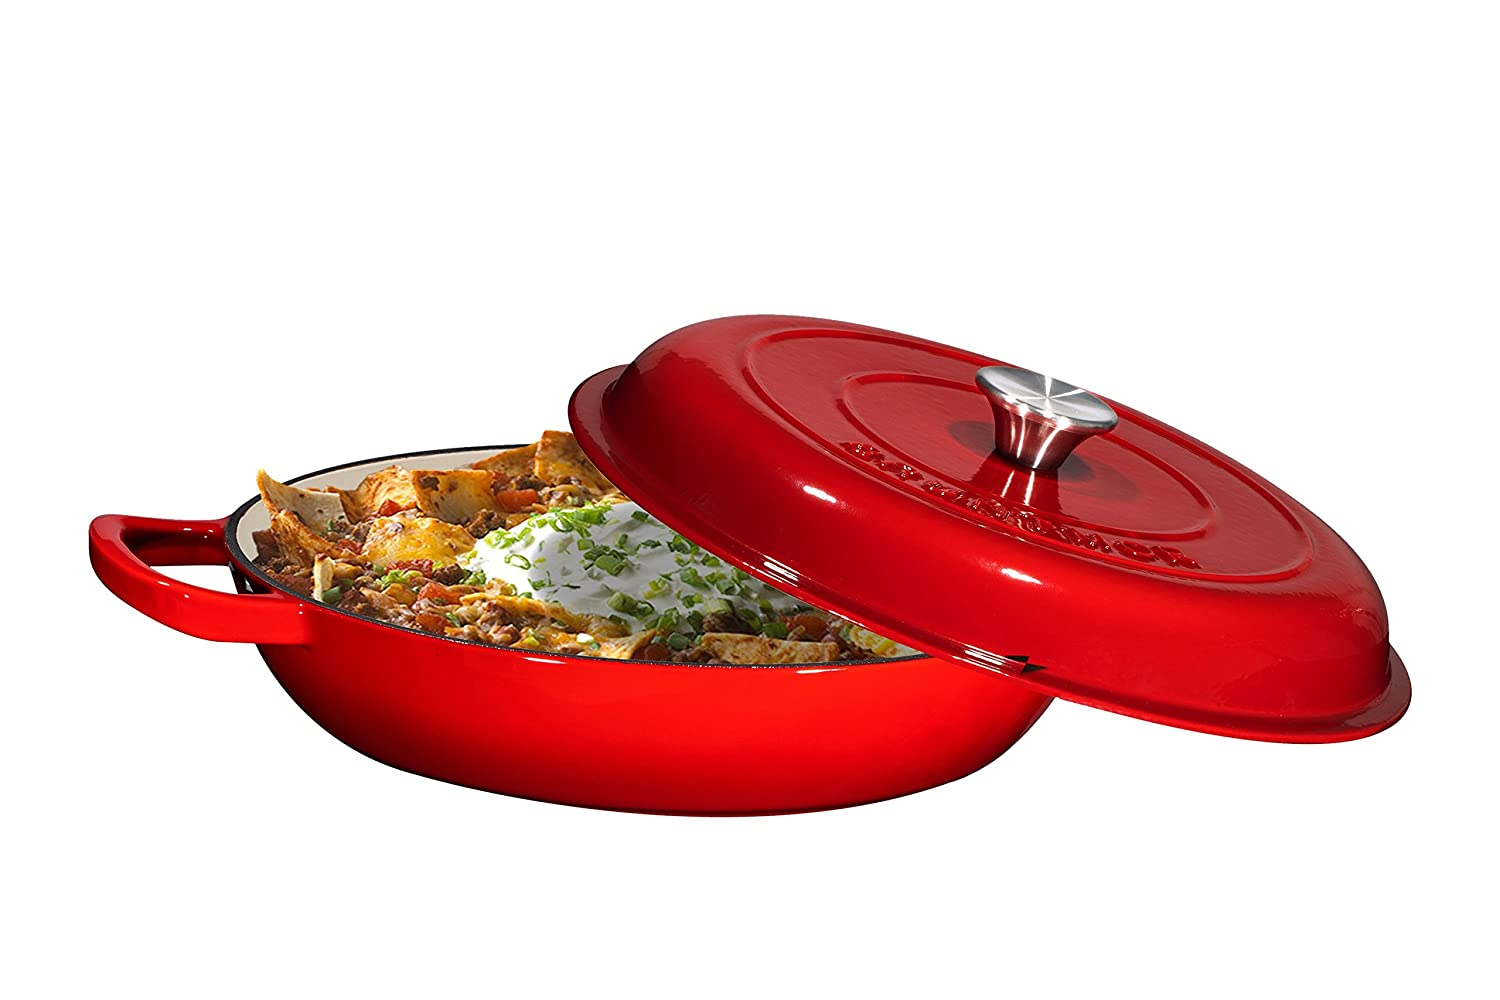 Enameled Cast Iron Casserole Braiser - Pan with Cover, 3.8-Quart, Gradient Red Bruntmor BR-SC472